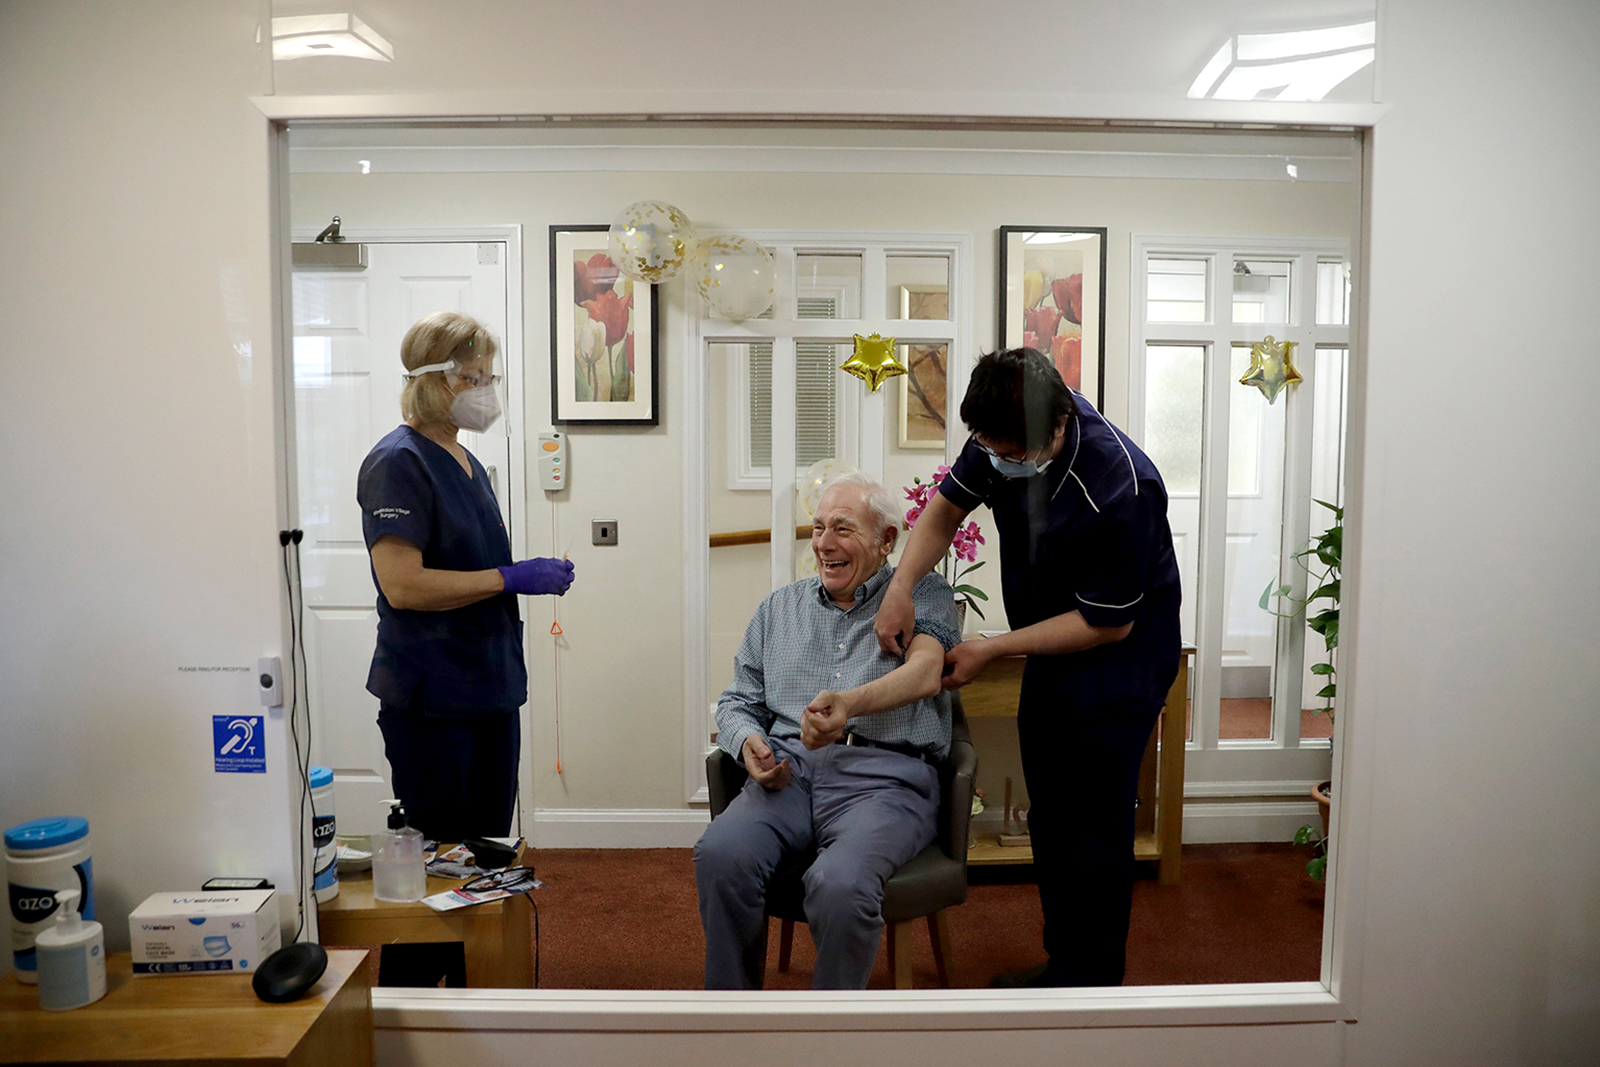 Care home resident Ian Hurley, aged 80, is seen smiling through a viewing screen as his sleeved is rolled up to receive his first dose of the Oxford/AstraZeneca COVID-19 vaccine at the Wimbledon Beaumont Care Home, in London, on January 13.